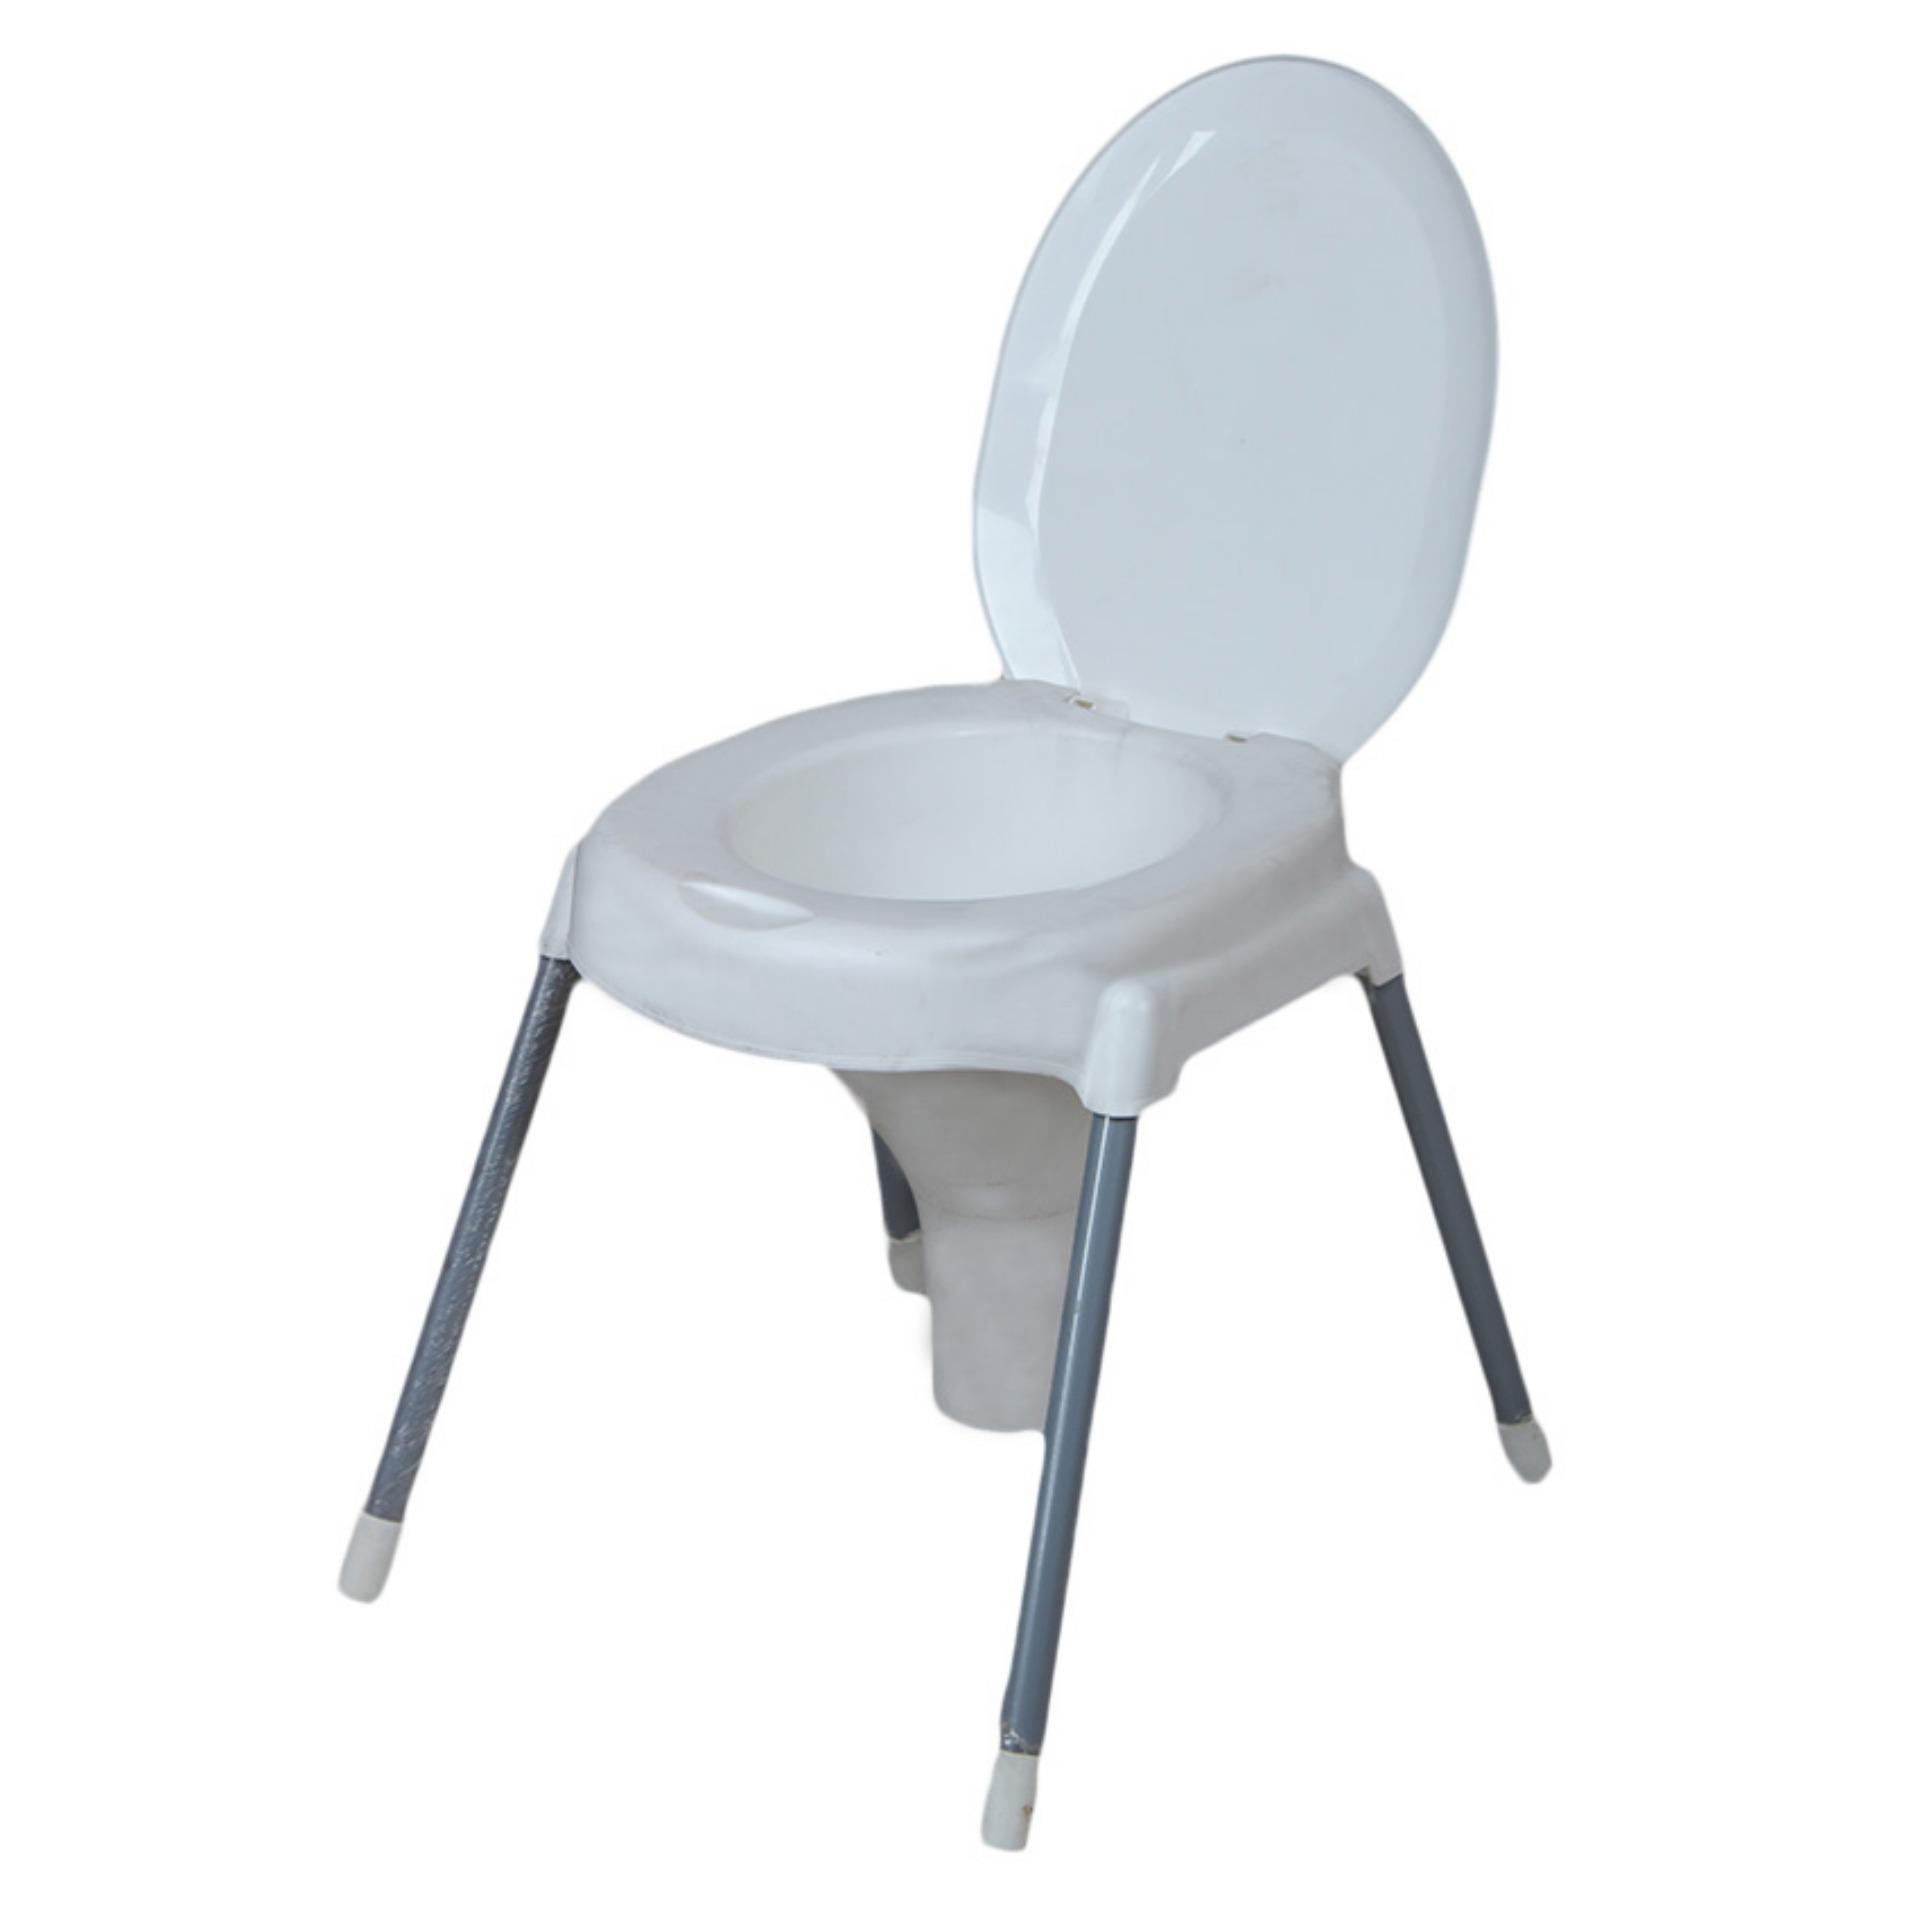 Bedside Commode Chair Heavy Duty Bedside Commode Seat With Cover 4 Extremely Strong Steel Legs